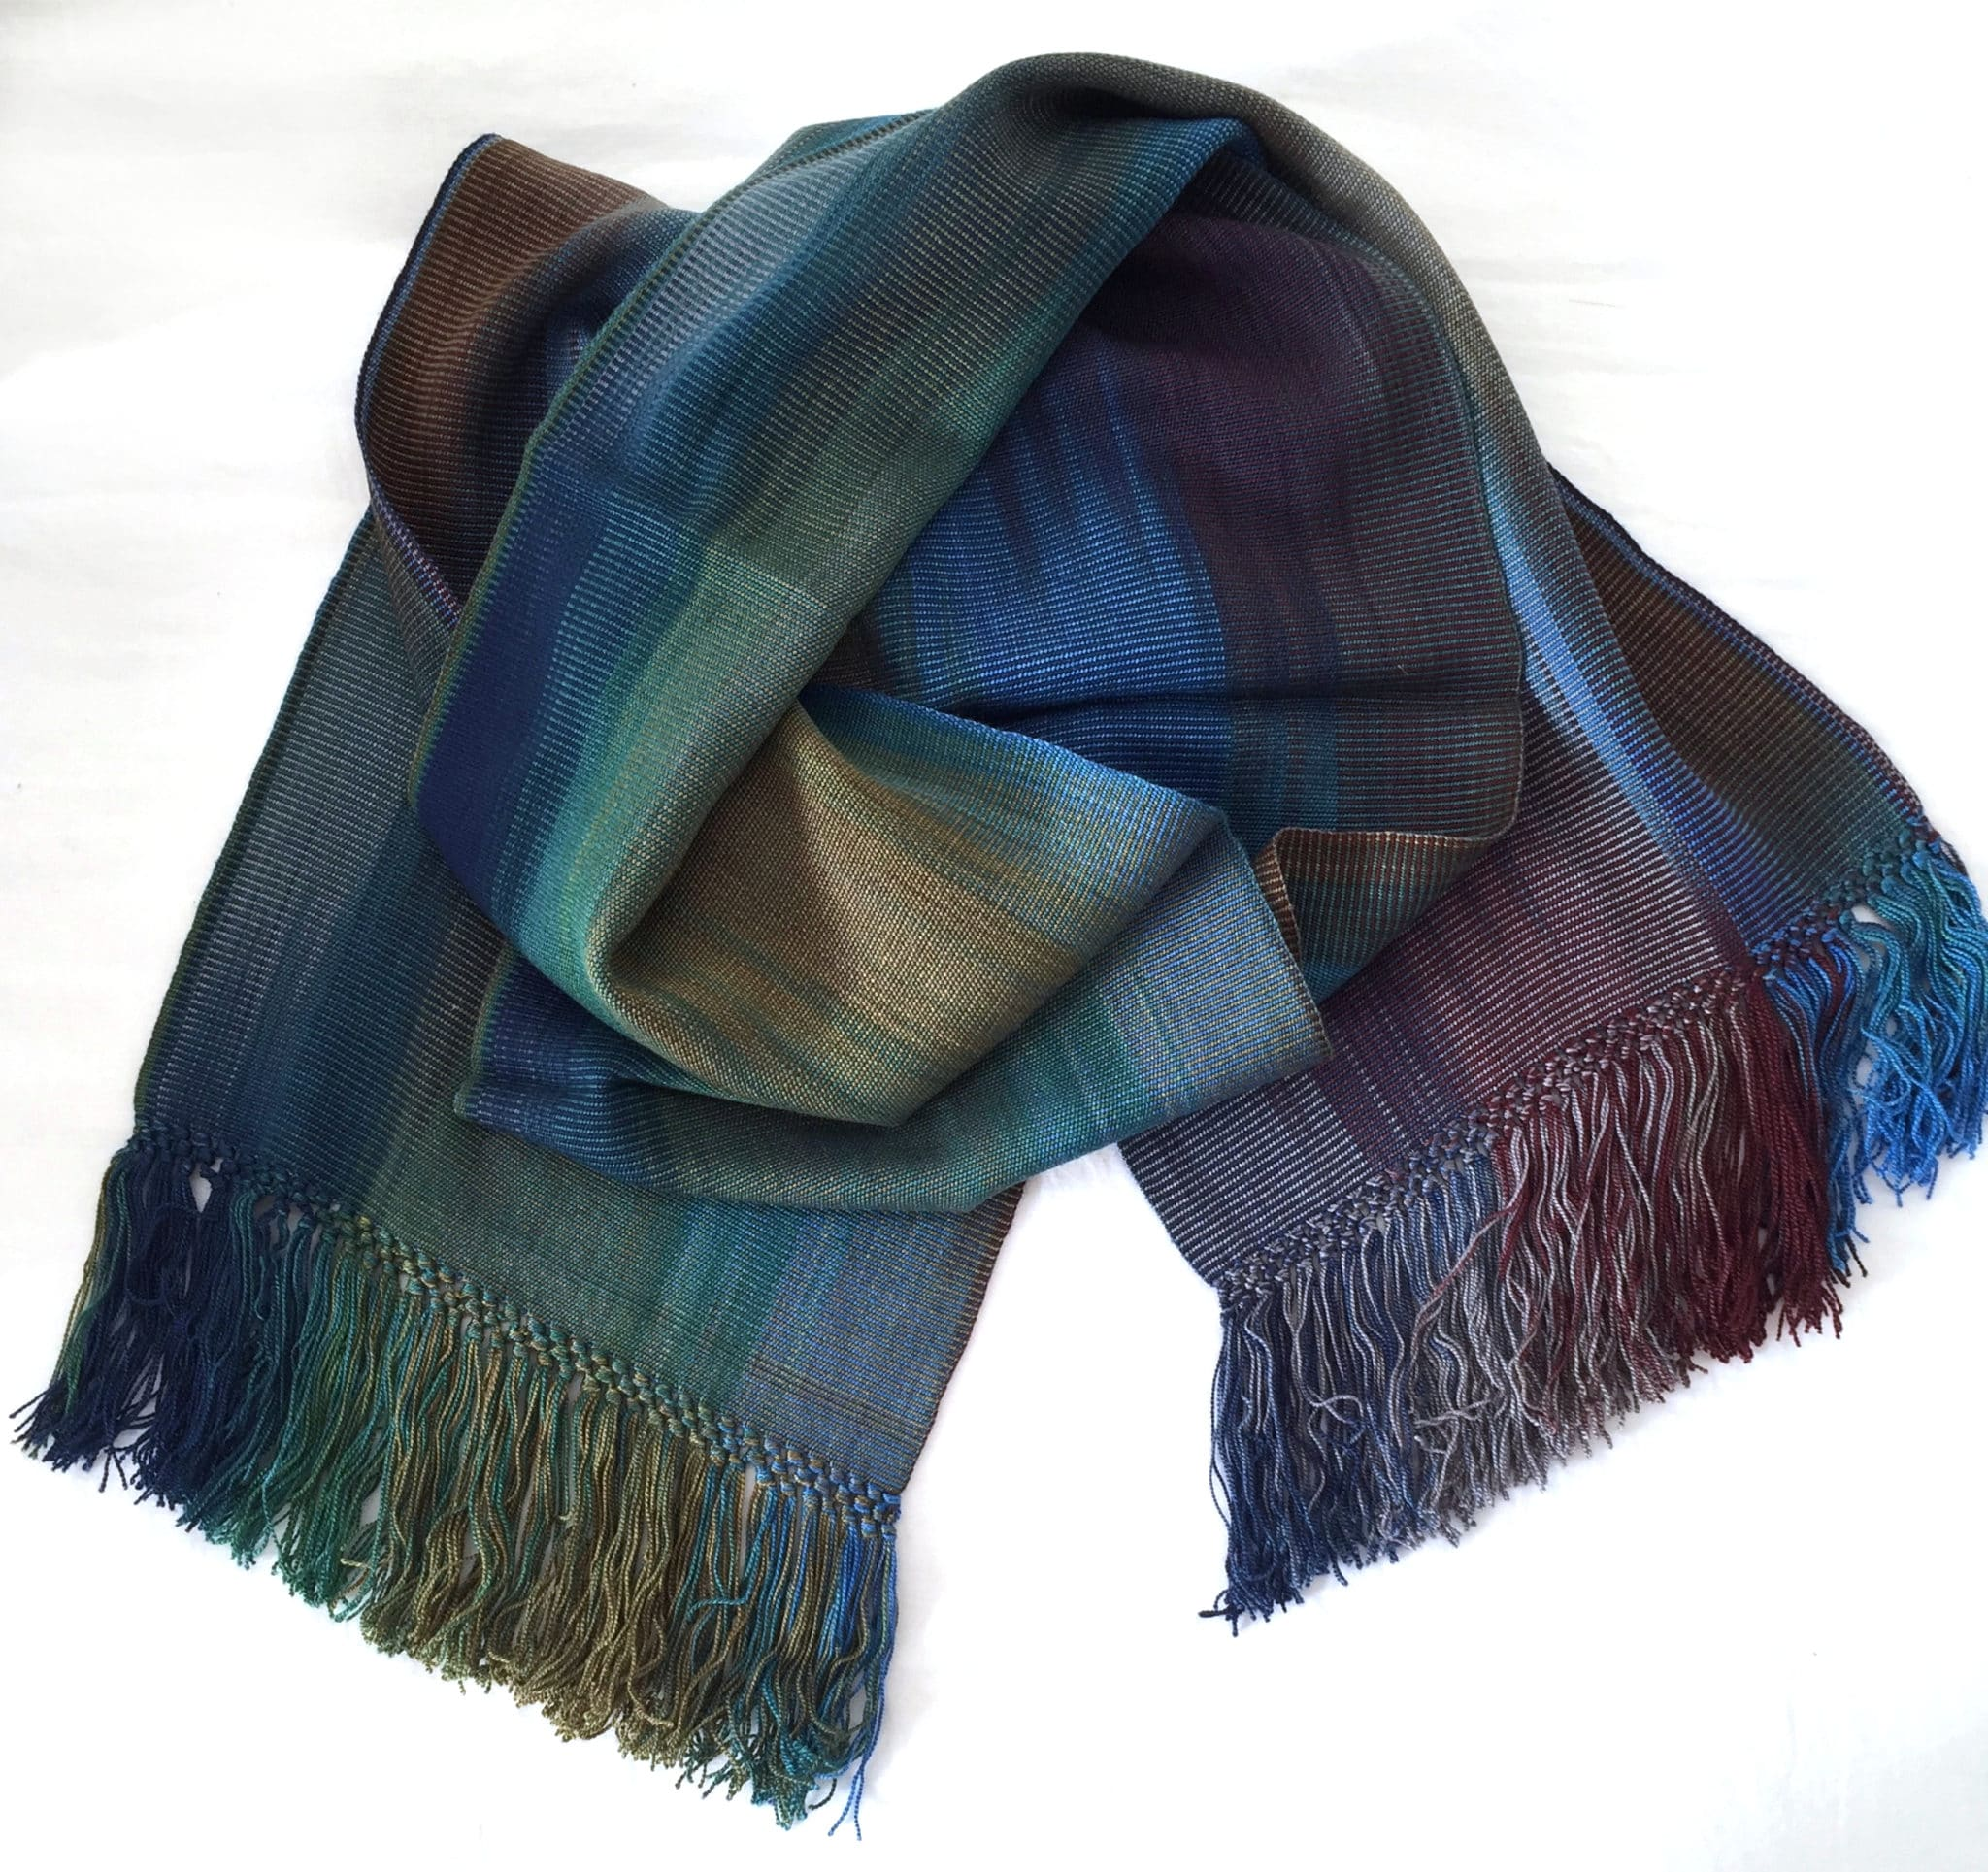 Blue, Green, Burgundy, Gray - Lightweight Bamboo Handwoven Scarf 8 x 68